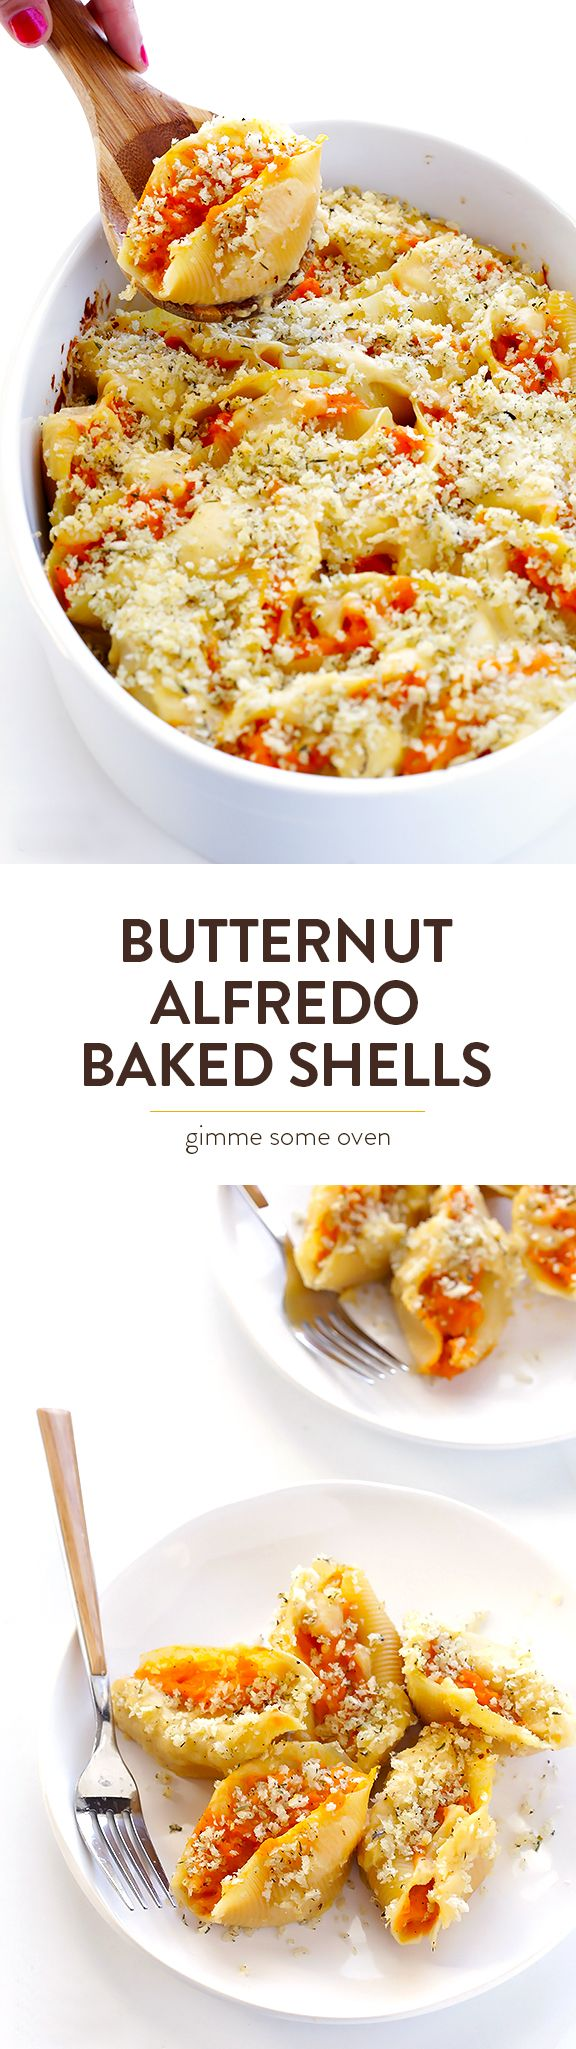 This recipe for Butternut Squash Alfredo Baked Shells is the perfect comfort food for fall, and so delicious   gimmesomeoven.com